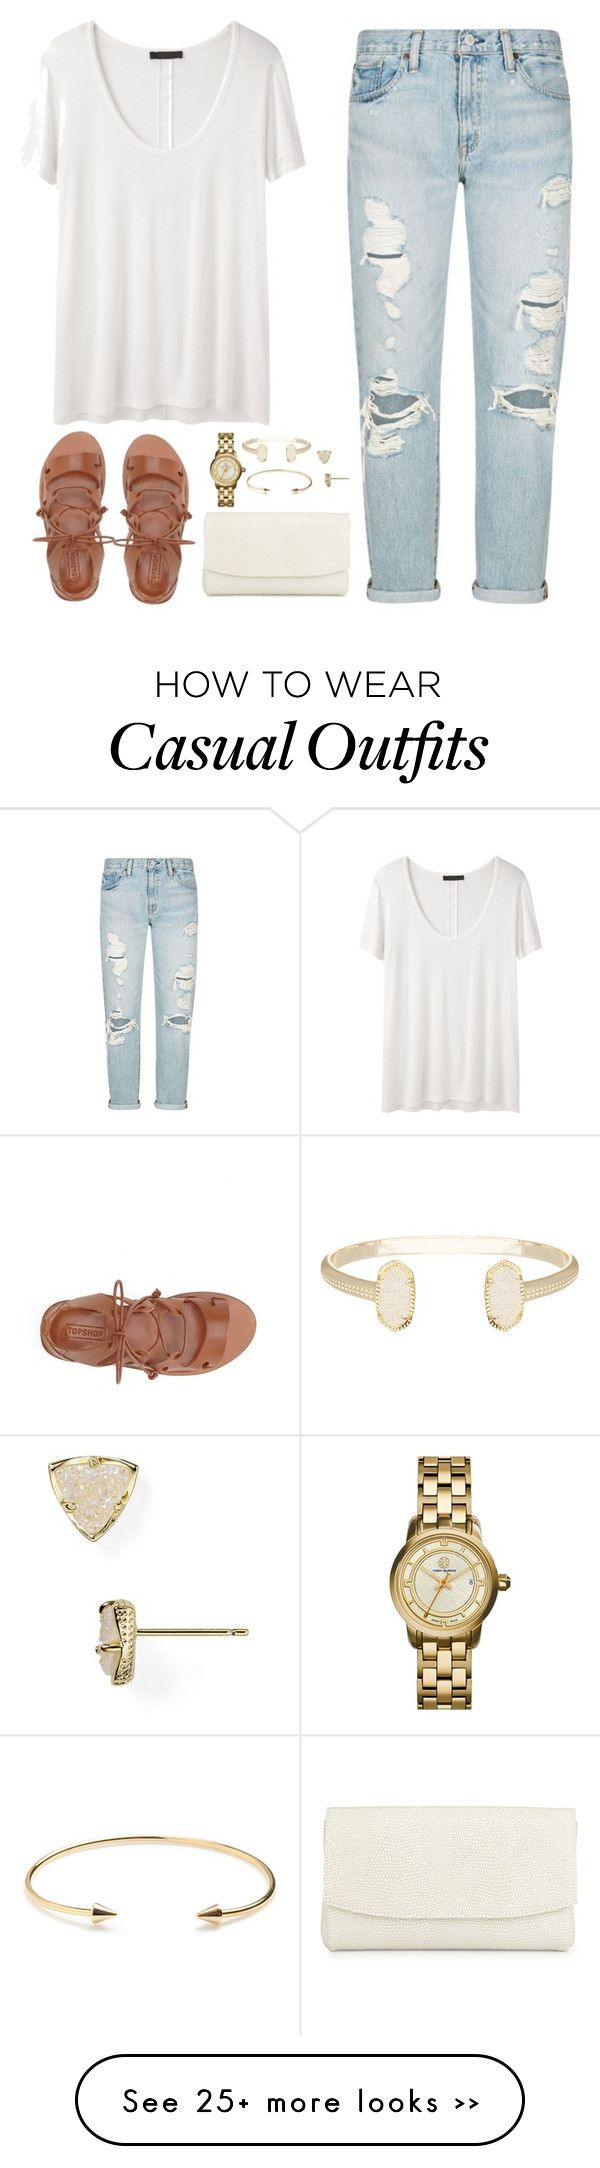 best images about outfits on pinterest